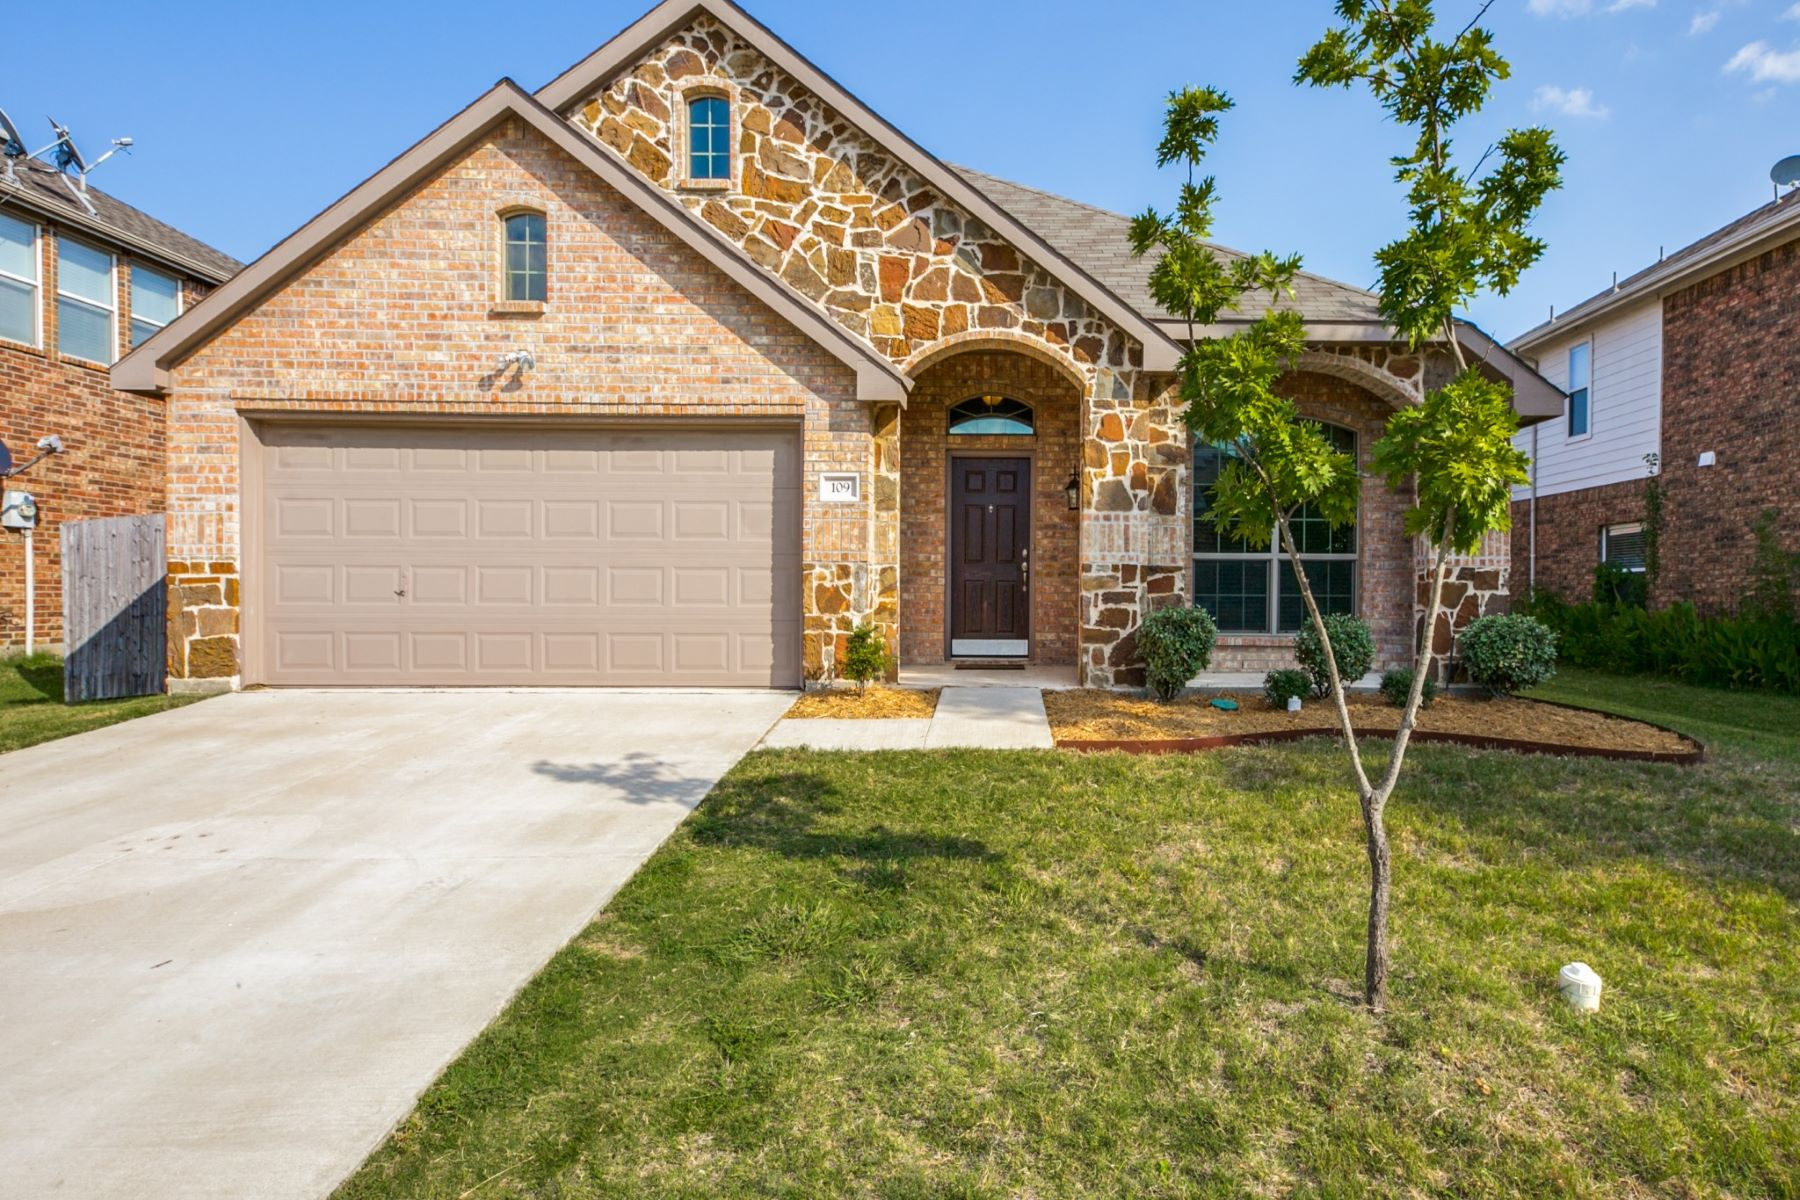 Single Family Homes for Active at Beautiful Forney Home 109 Stampede Trail Forney, Texas 75126 United States